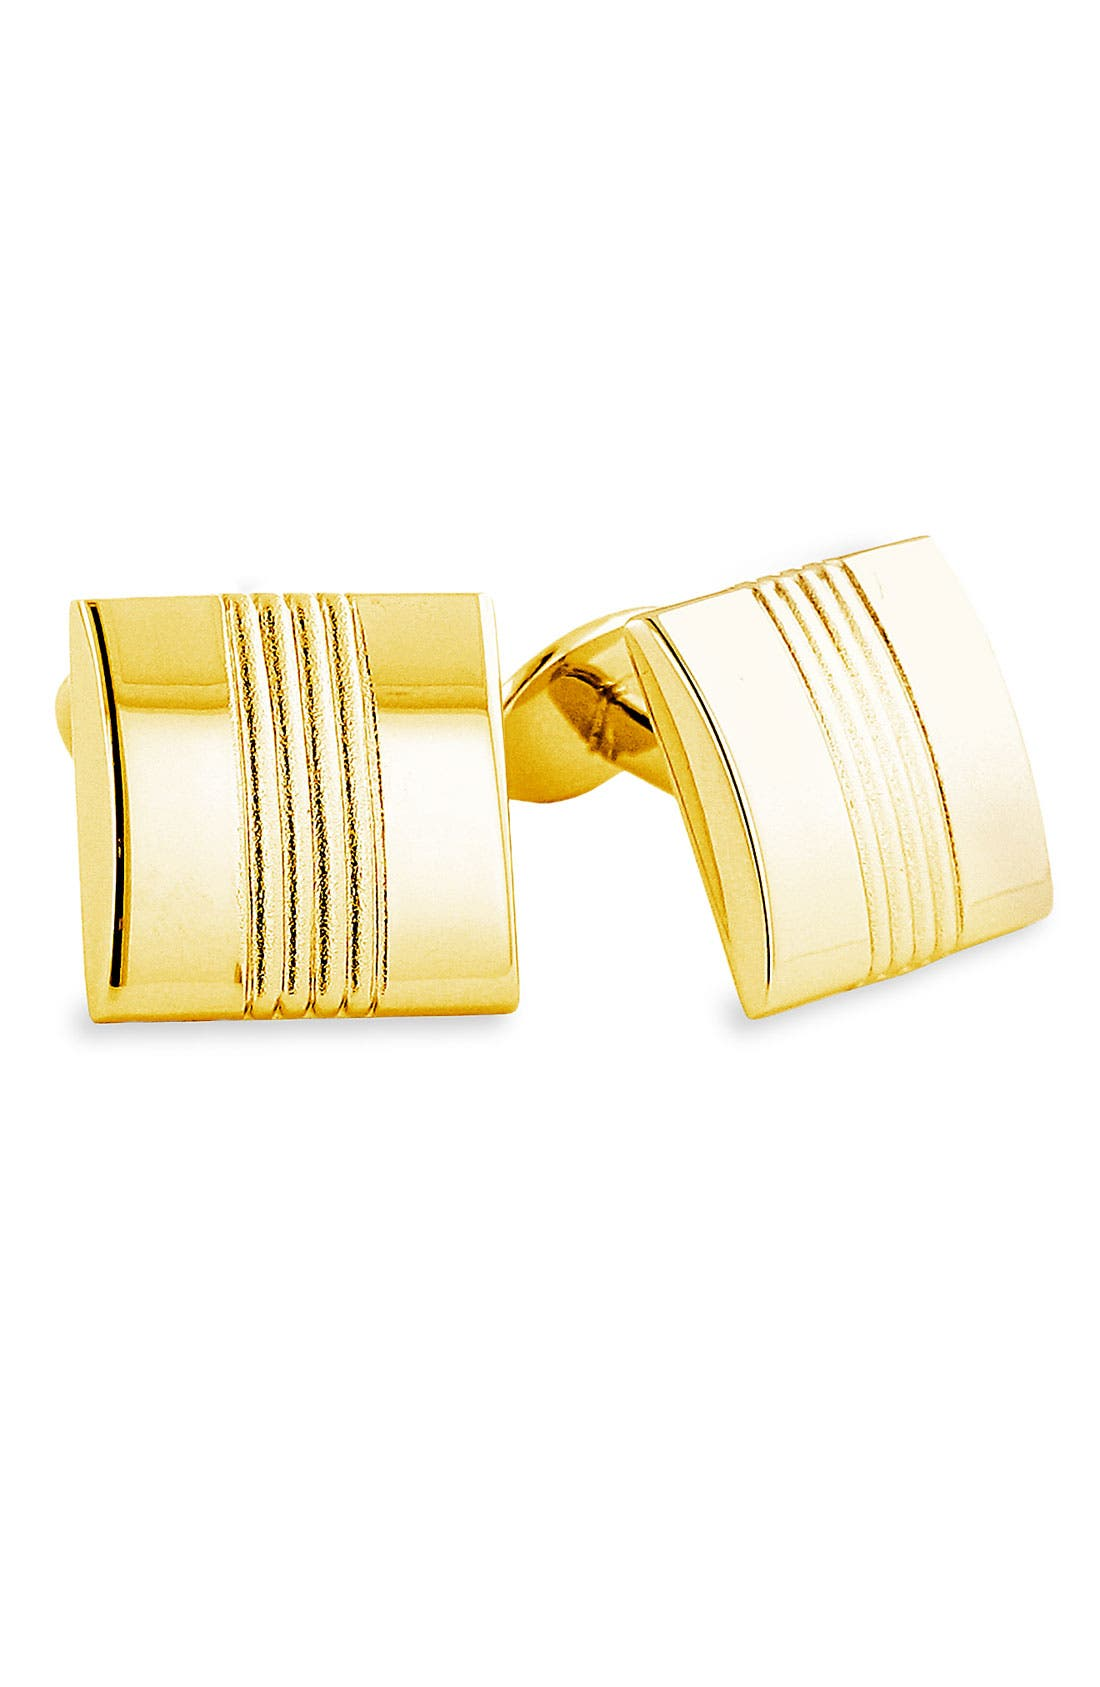 Sterling Silver Cuff Links,                         Main,                         color, Gold Metallic